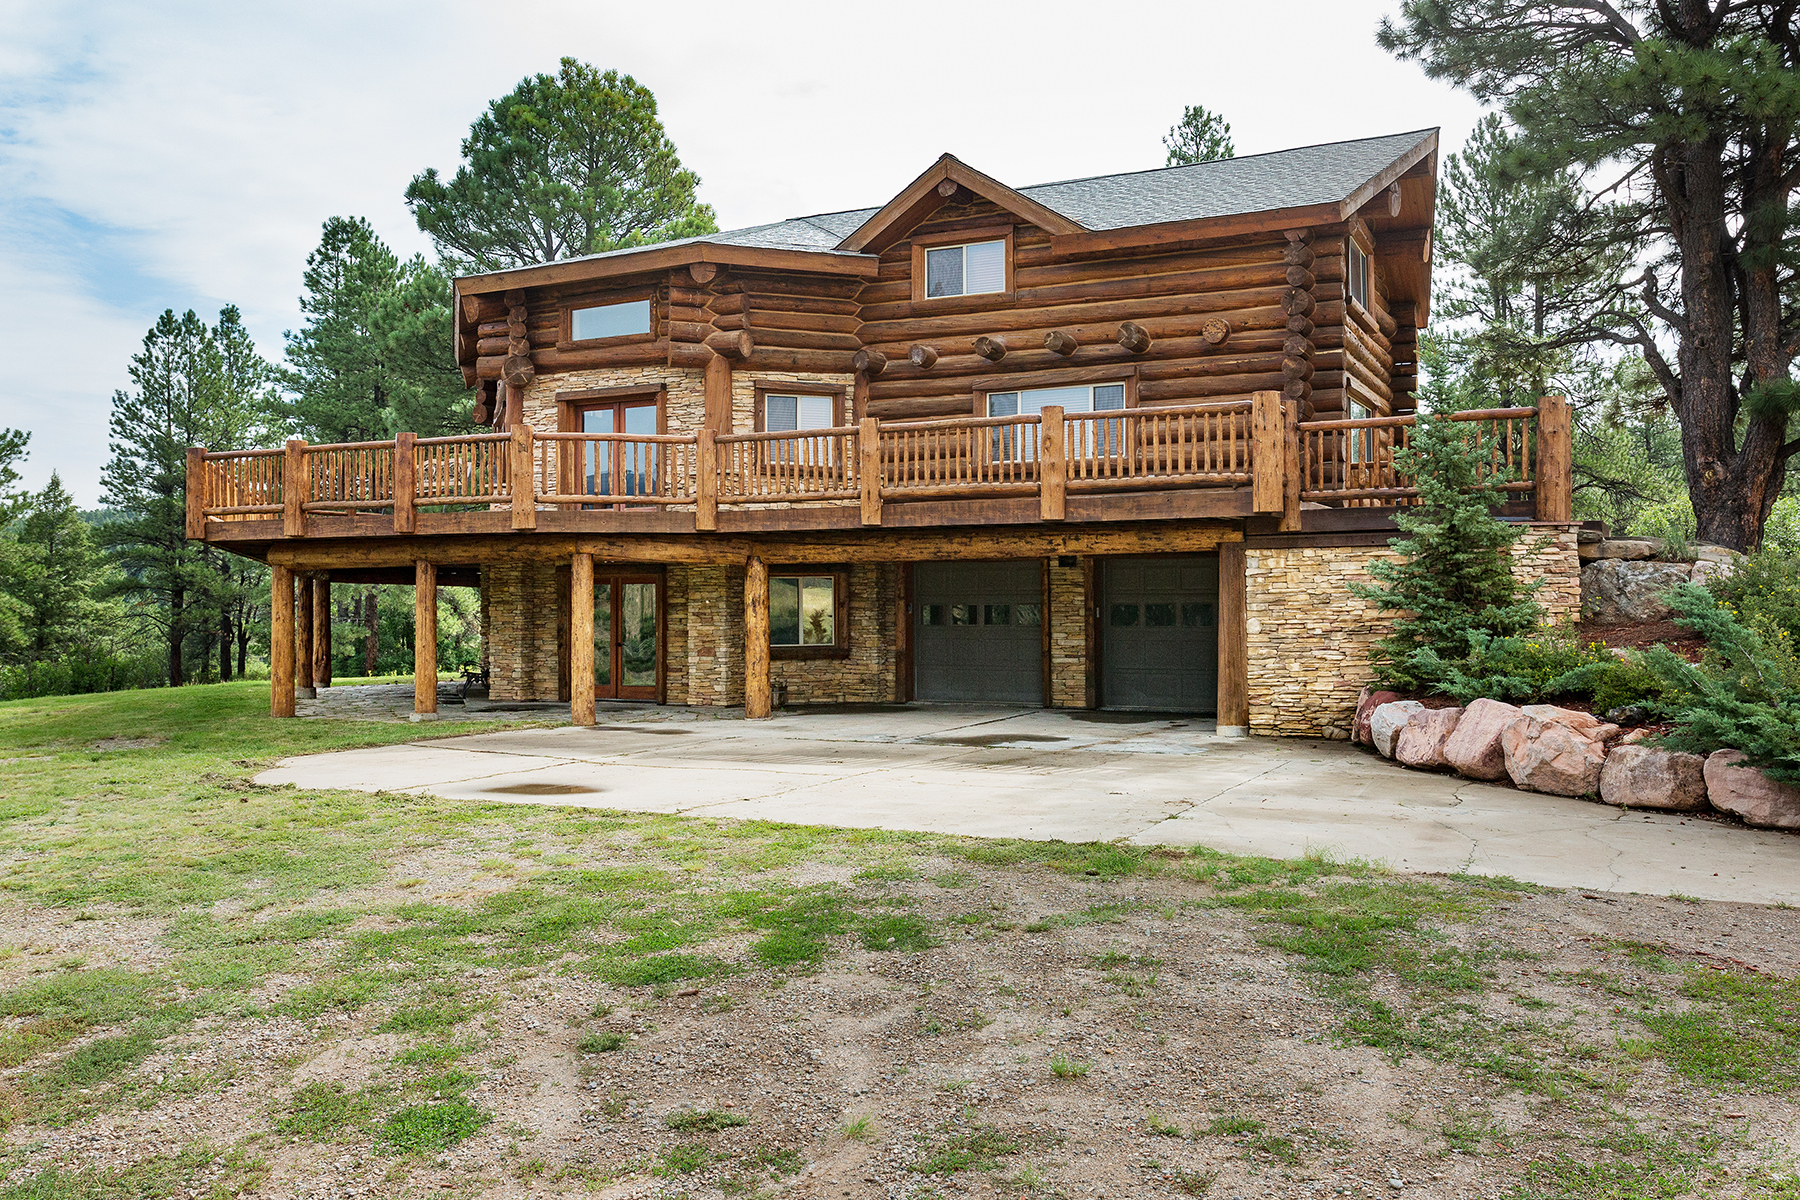 Single Family Home for Sale at Rocking A Ranch 16295 W HWY 160 Durango, Colorado 81301 United States